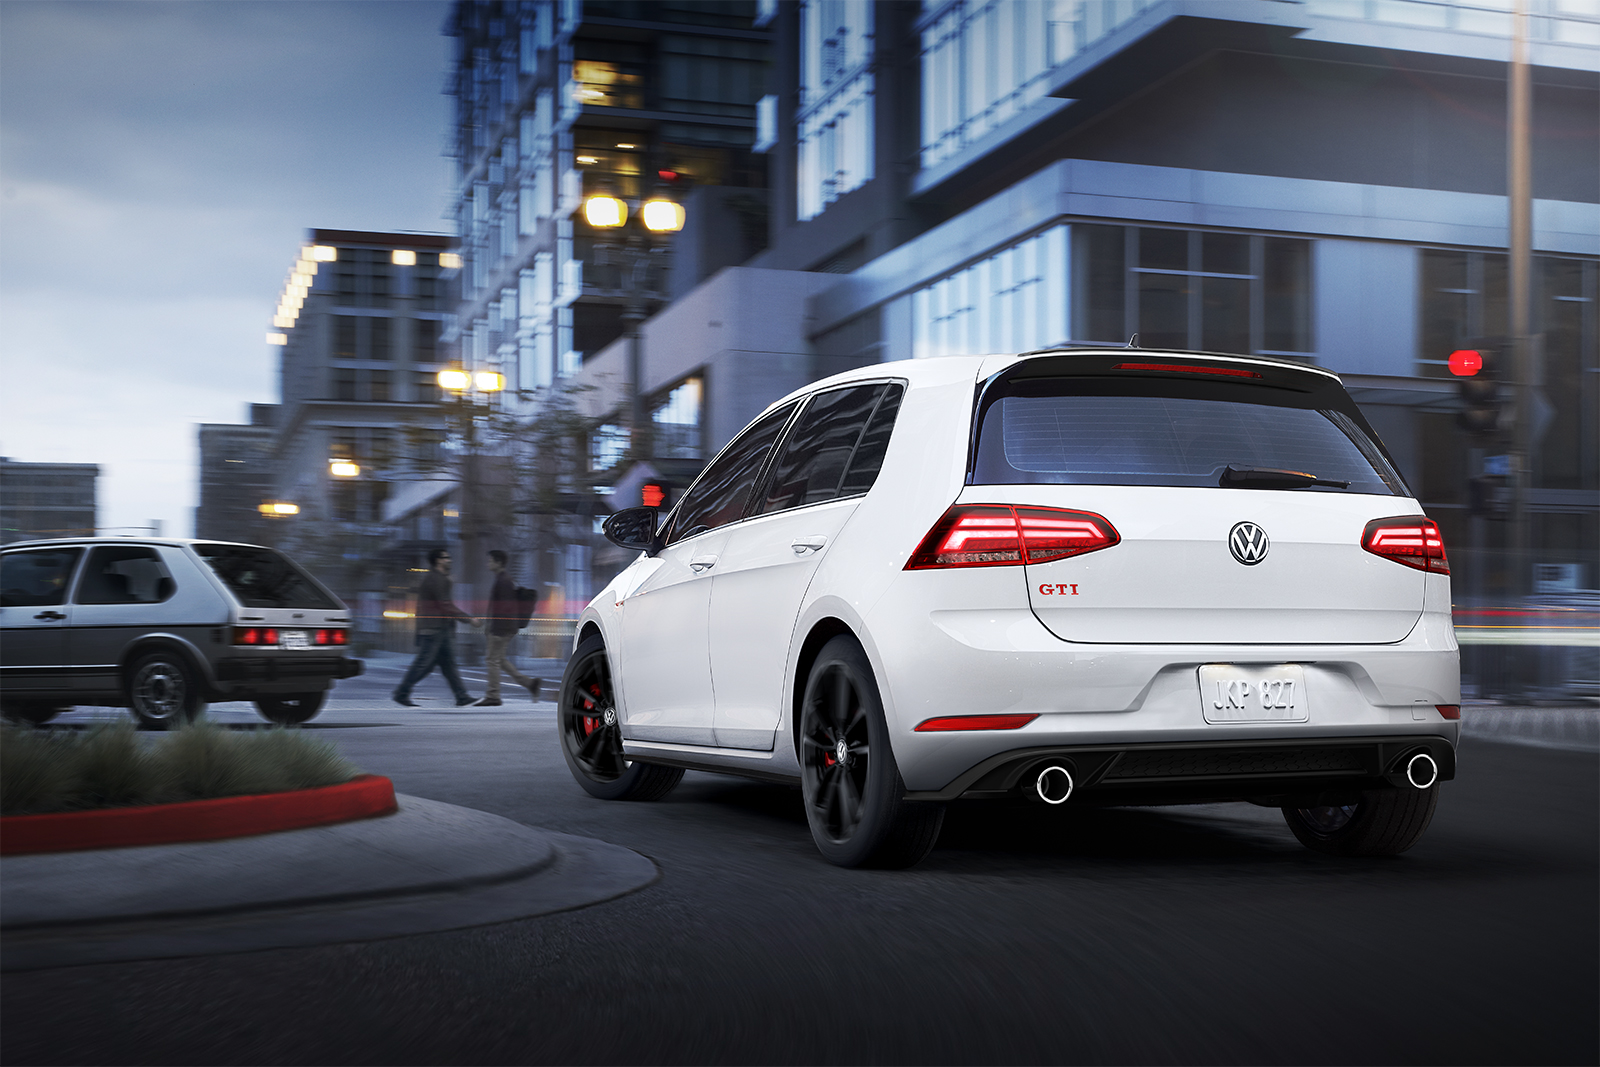 2019 Volkswagen Golf GTI White Rear Exterior